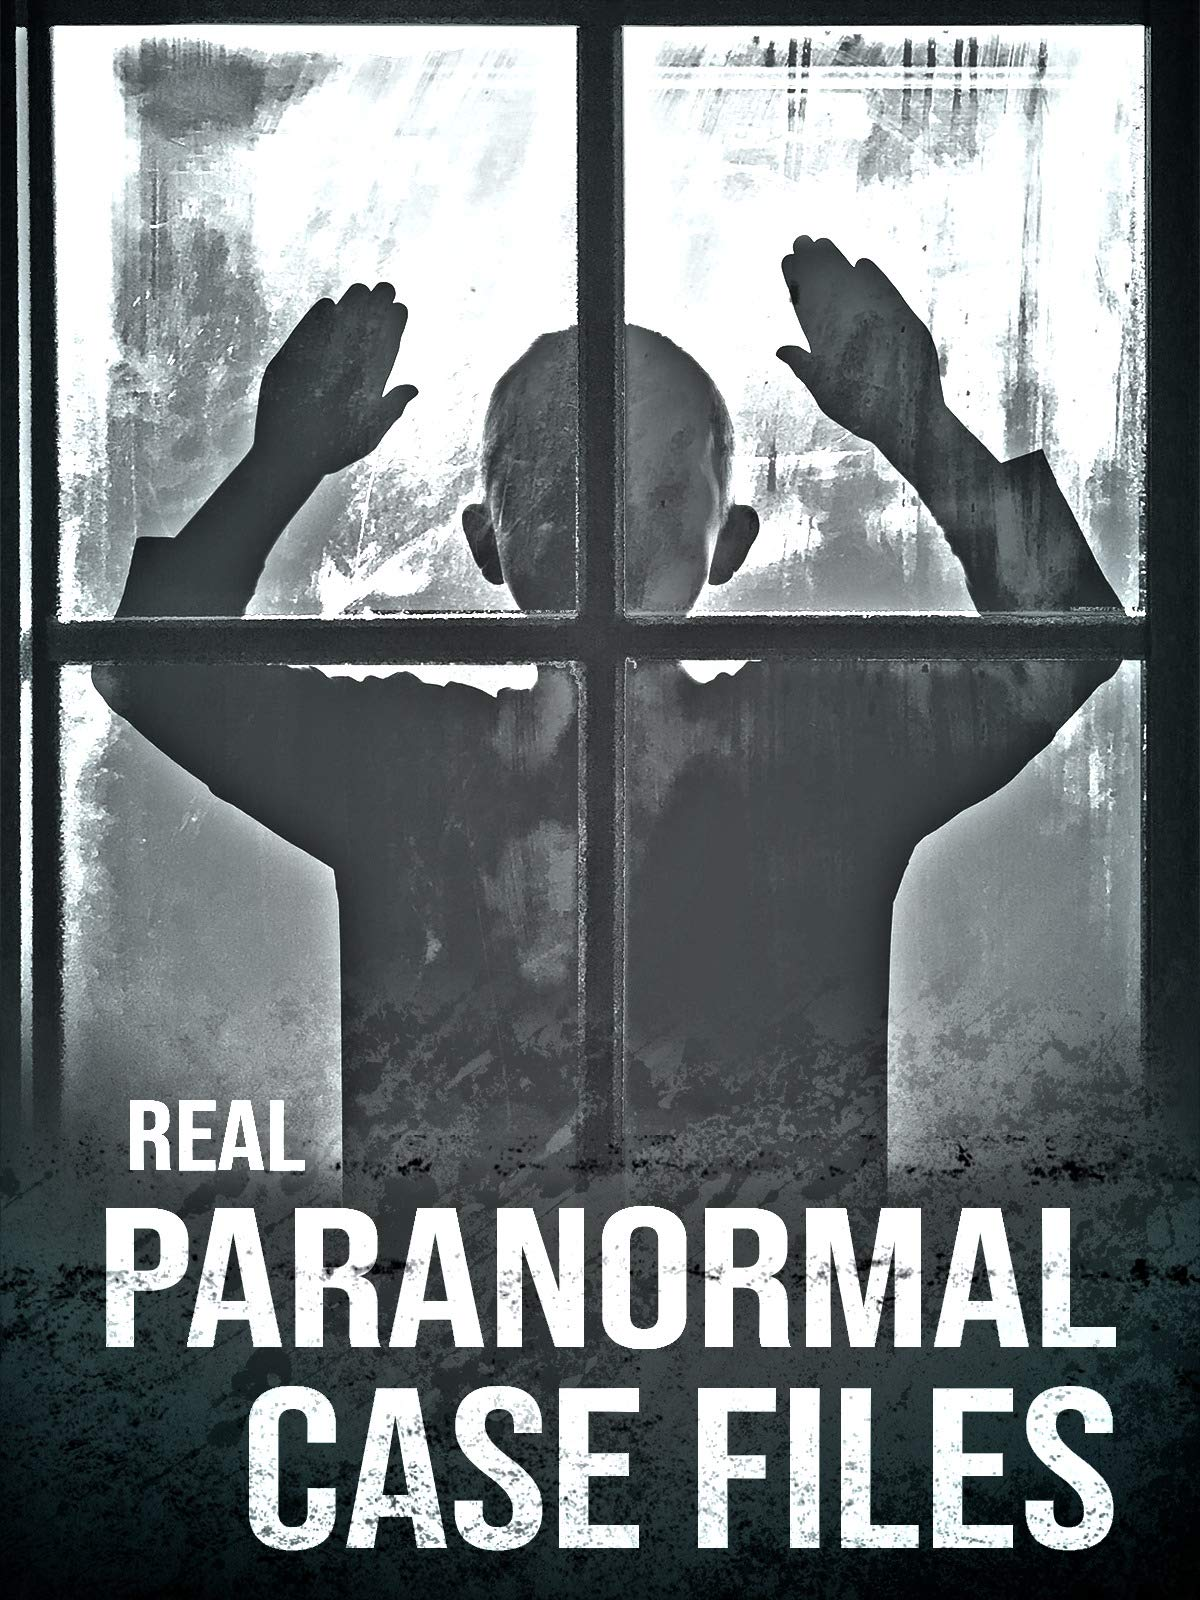 Real Paranormal Case Files on Amazon Prime Video UK